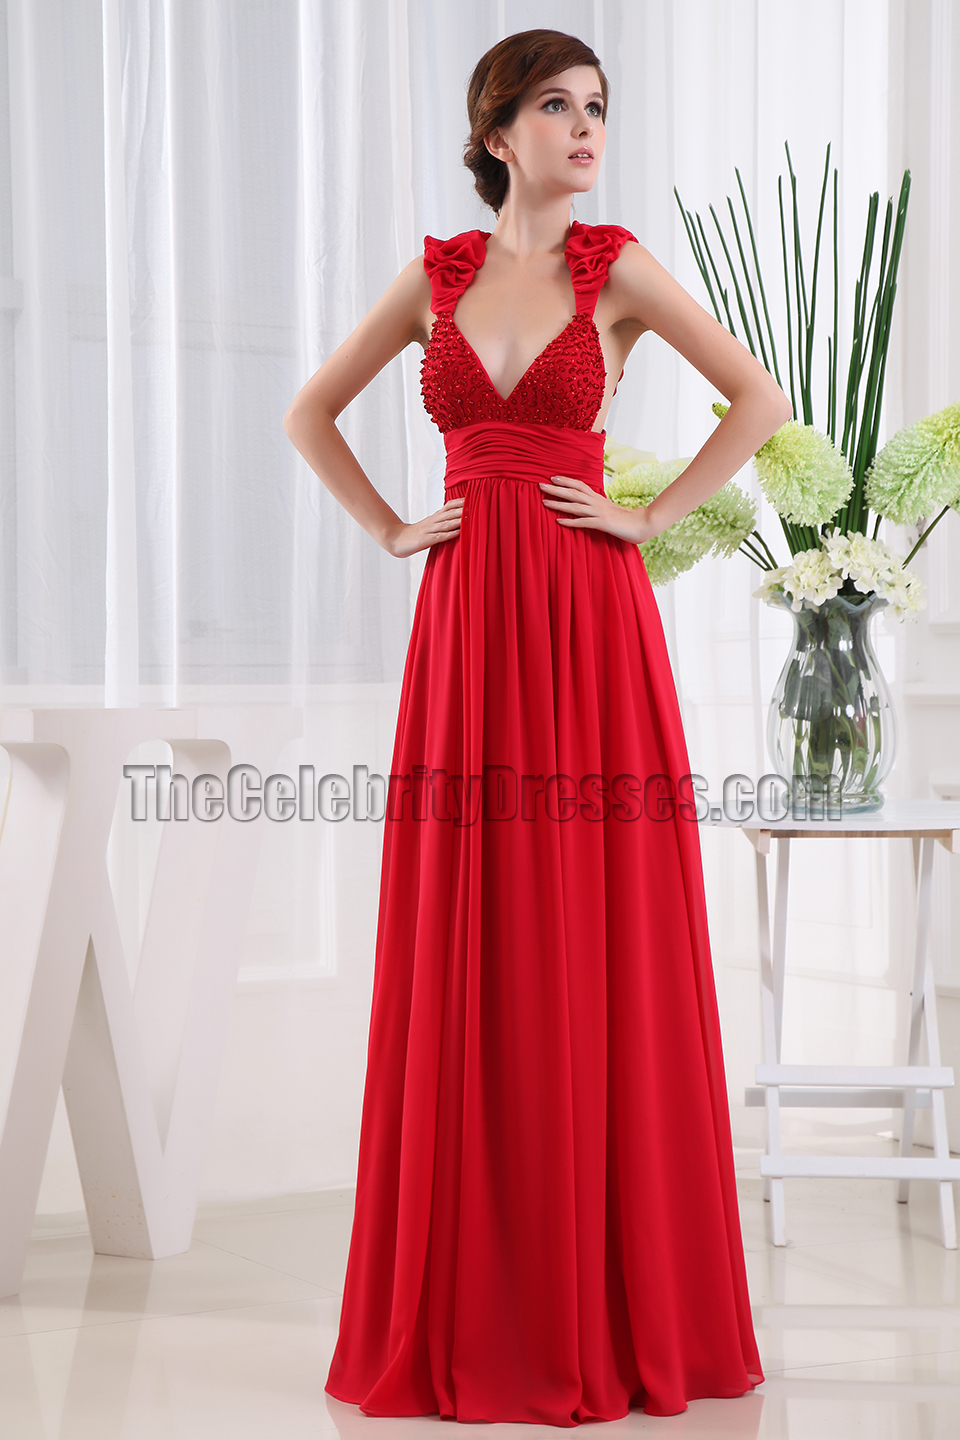 Sexy Red Deep V-neck Backless Evening Dress Prom Gown ...